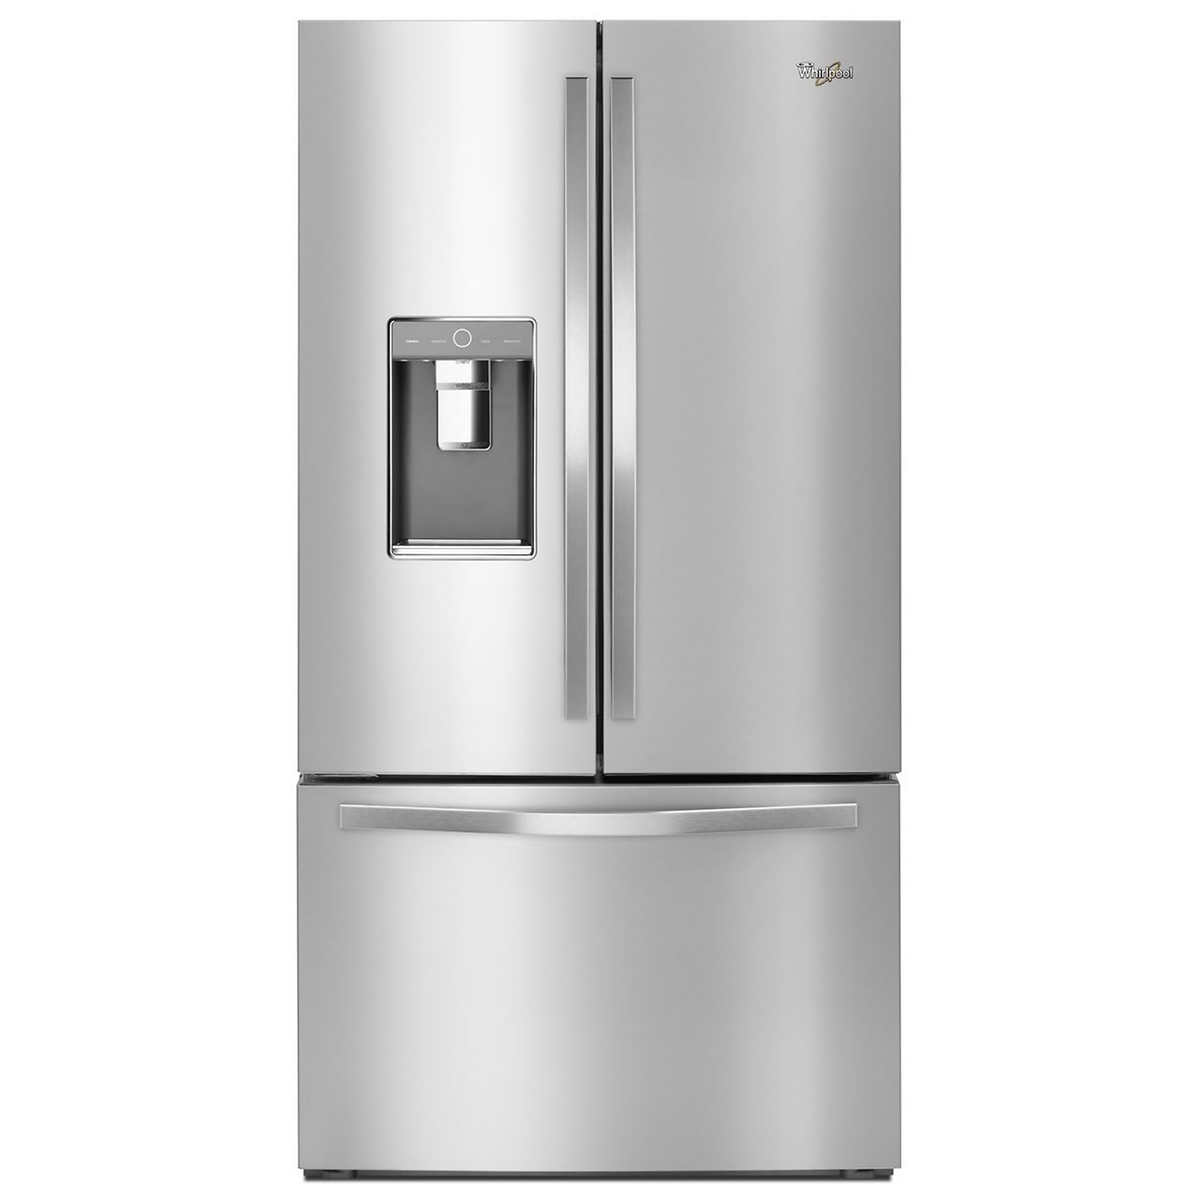 Whirlpool white ice appliances best buy - Whirlpool 32cuft 3 Door French Door Refrigerator With Infinity Slide Shelves In Stainless Steel